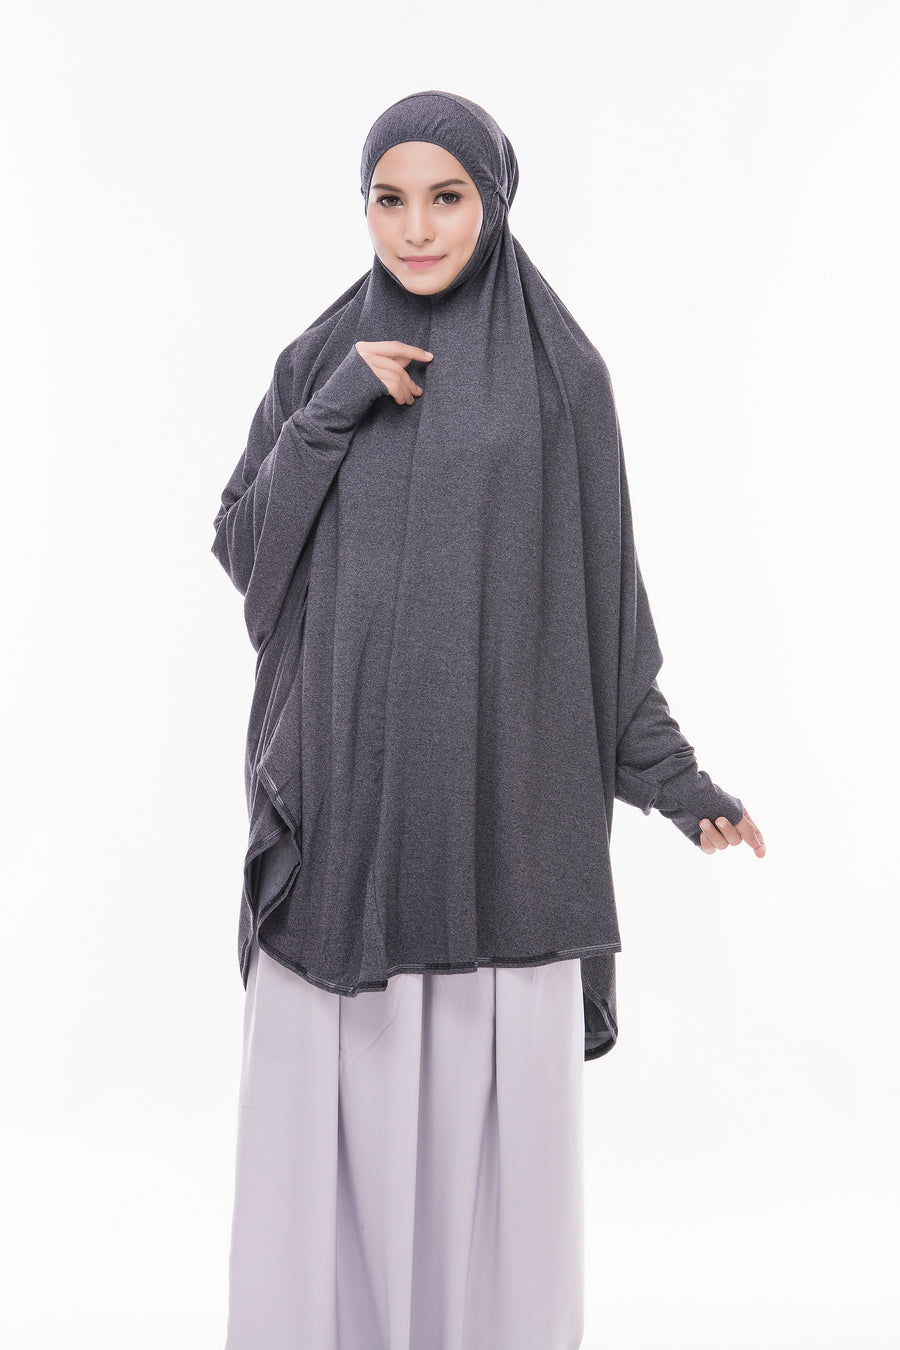 Telekung Mini Denim - Dark Grey (with sleeve)